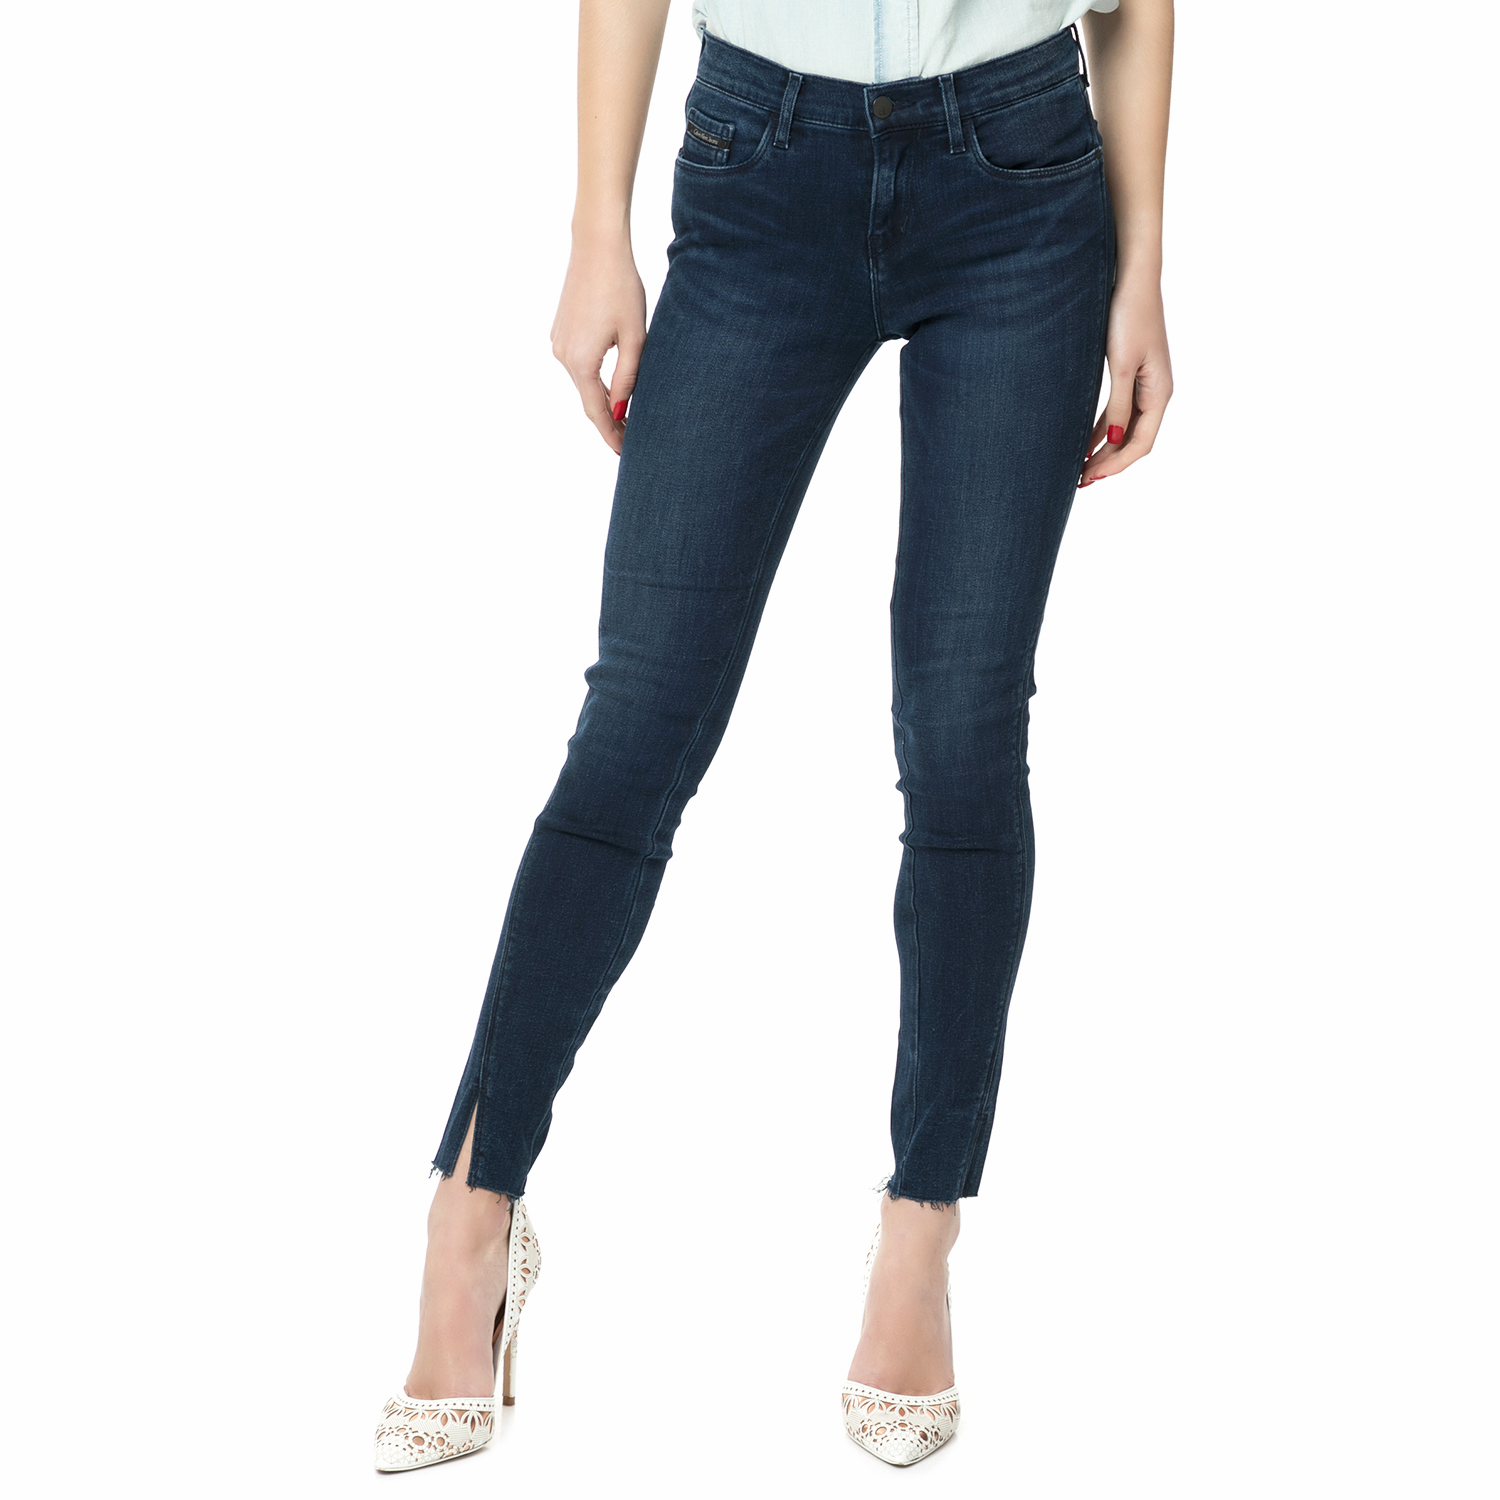 CALVIN KLEIN JEANS - Γυναικείο τζιν παντελόνι mid rise skinny Twisted ankle-Extr γυναικεία ρούχα παντελόνια skinny